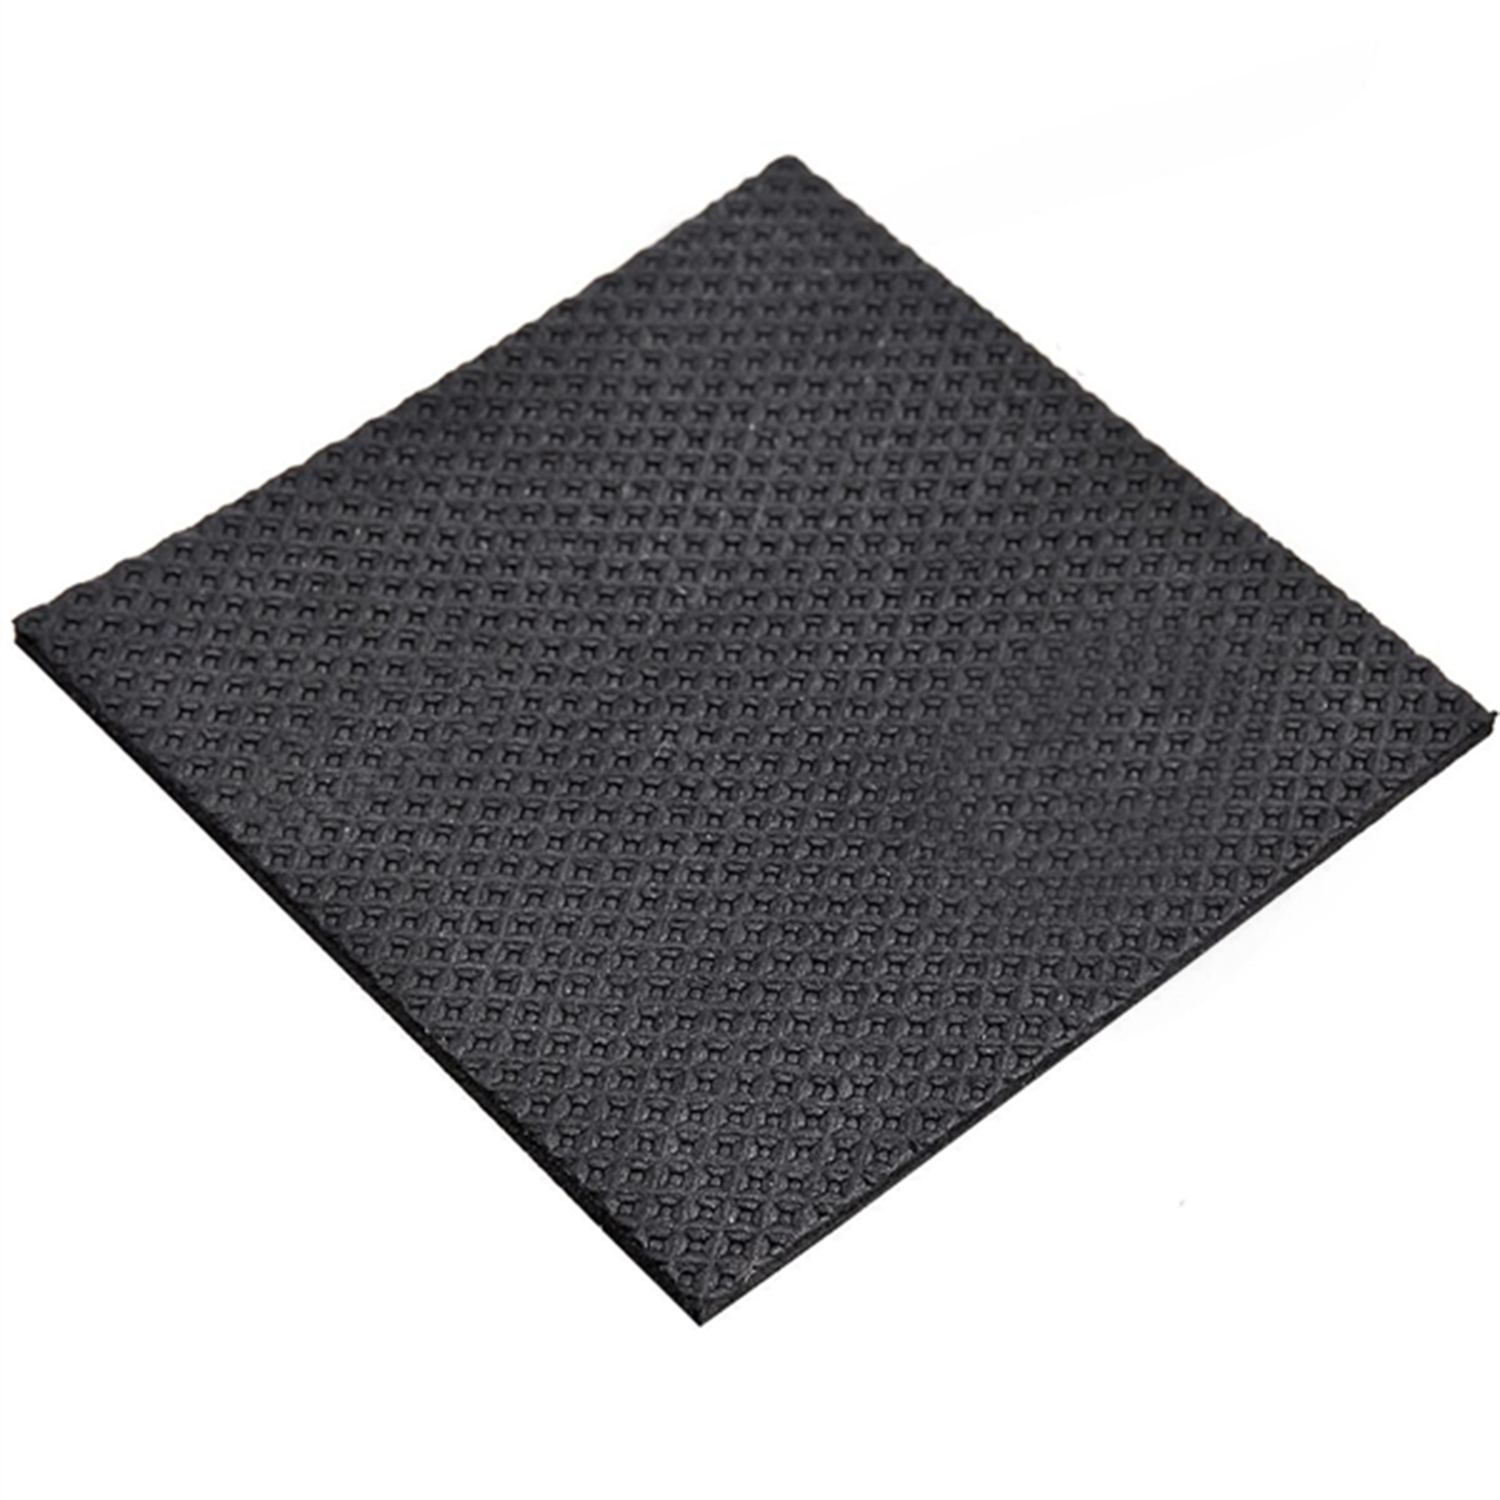 Home Anti Slip Square Chair Cushion Floor Protection Mat